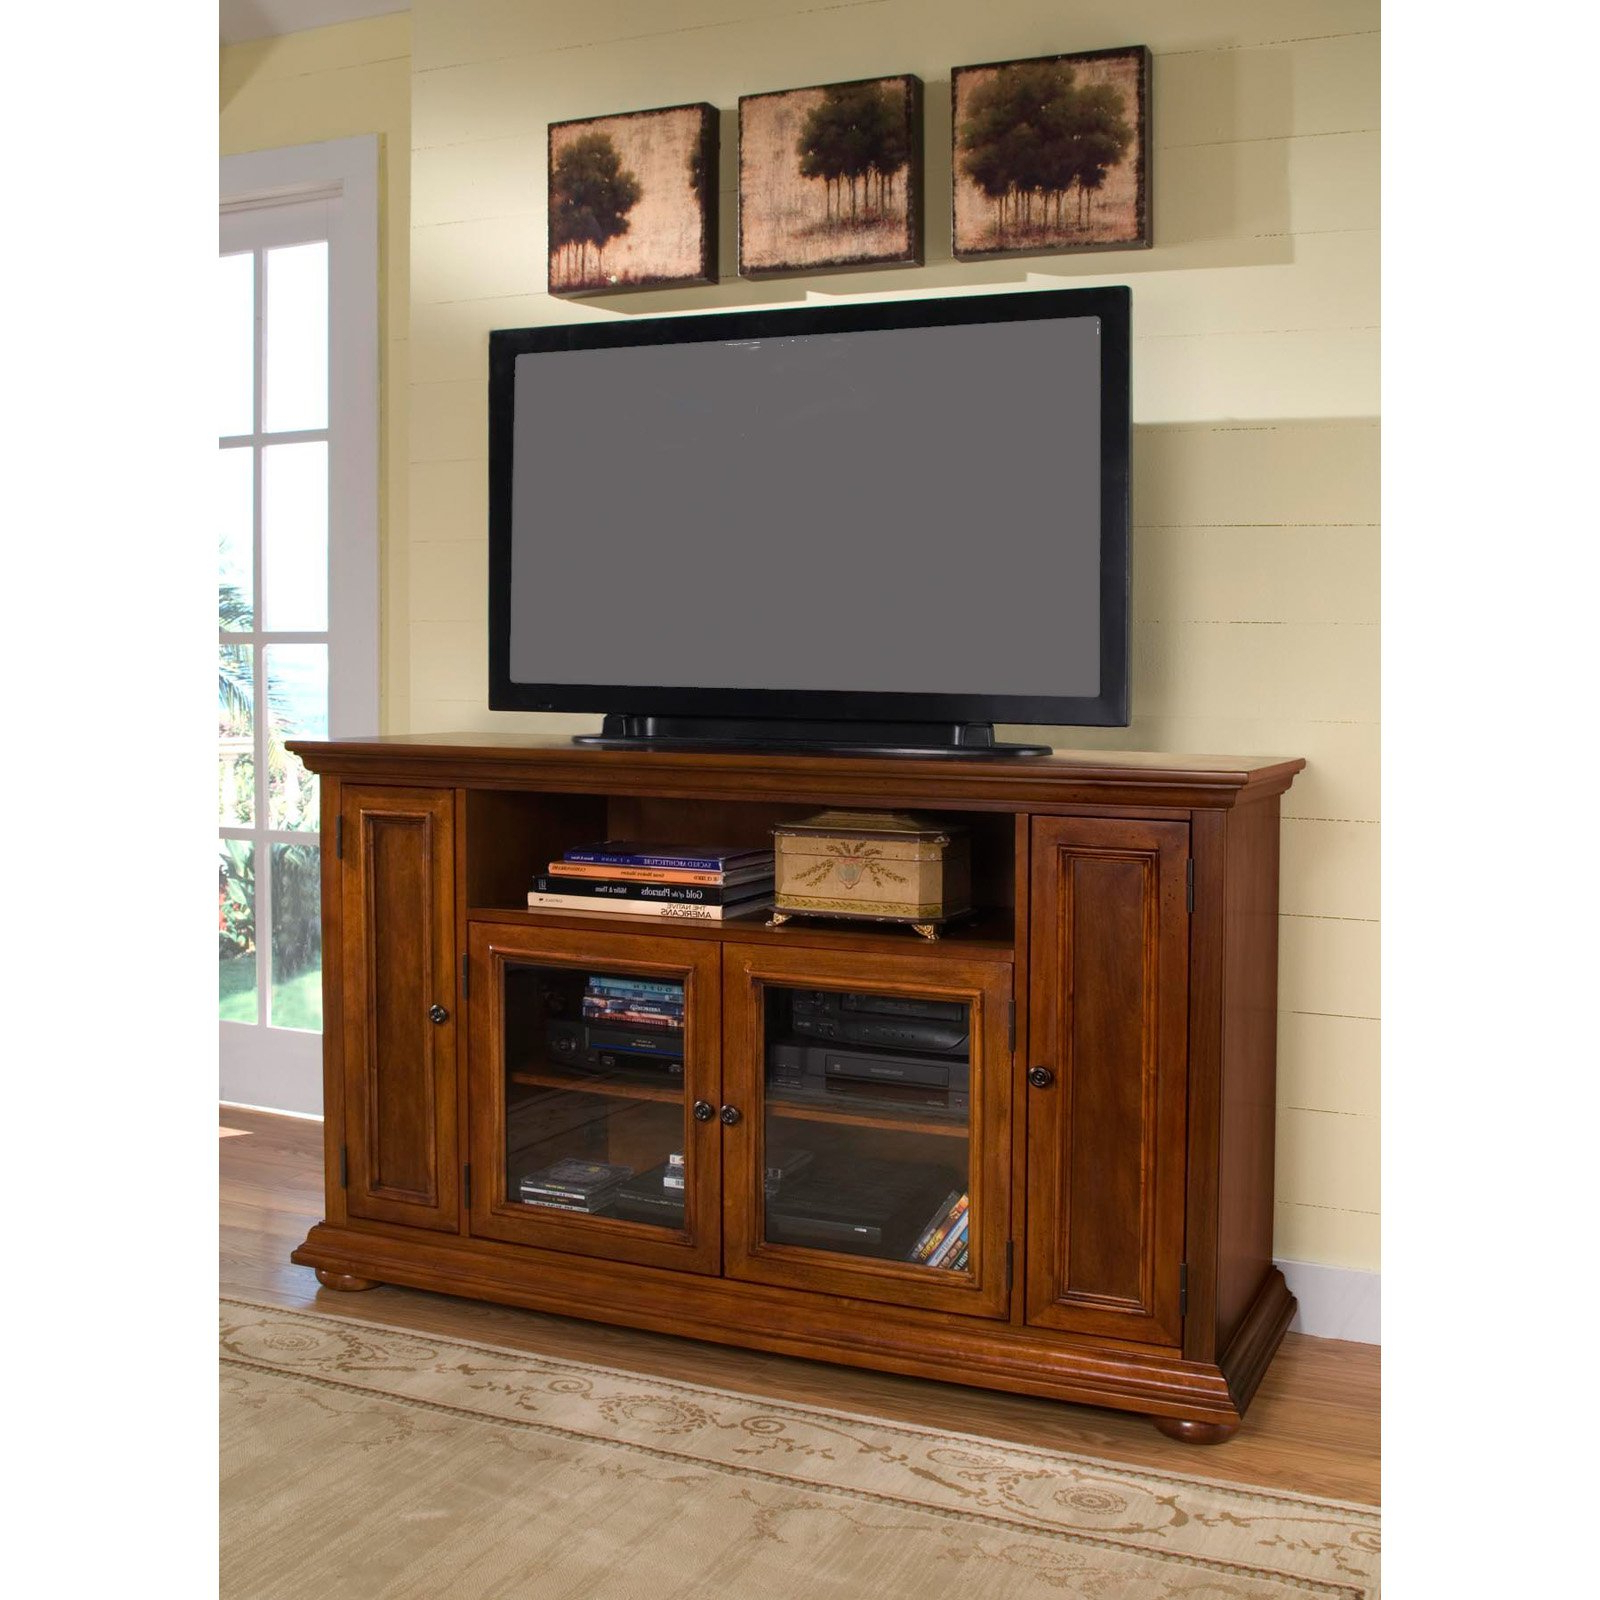 Light Brown Pine Wood Tv Stand With Storage Shelf Of Tall Intended For Most Up To Date Light Colored Tv Stands (Gallery 10 of 20)